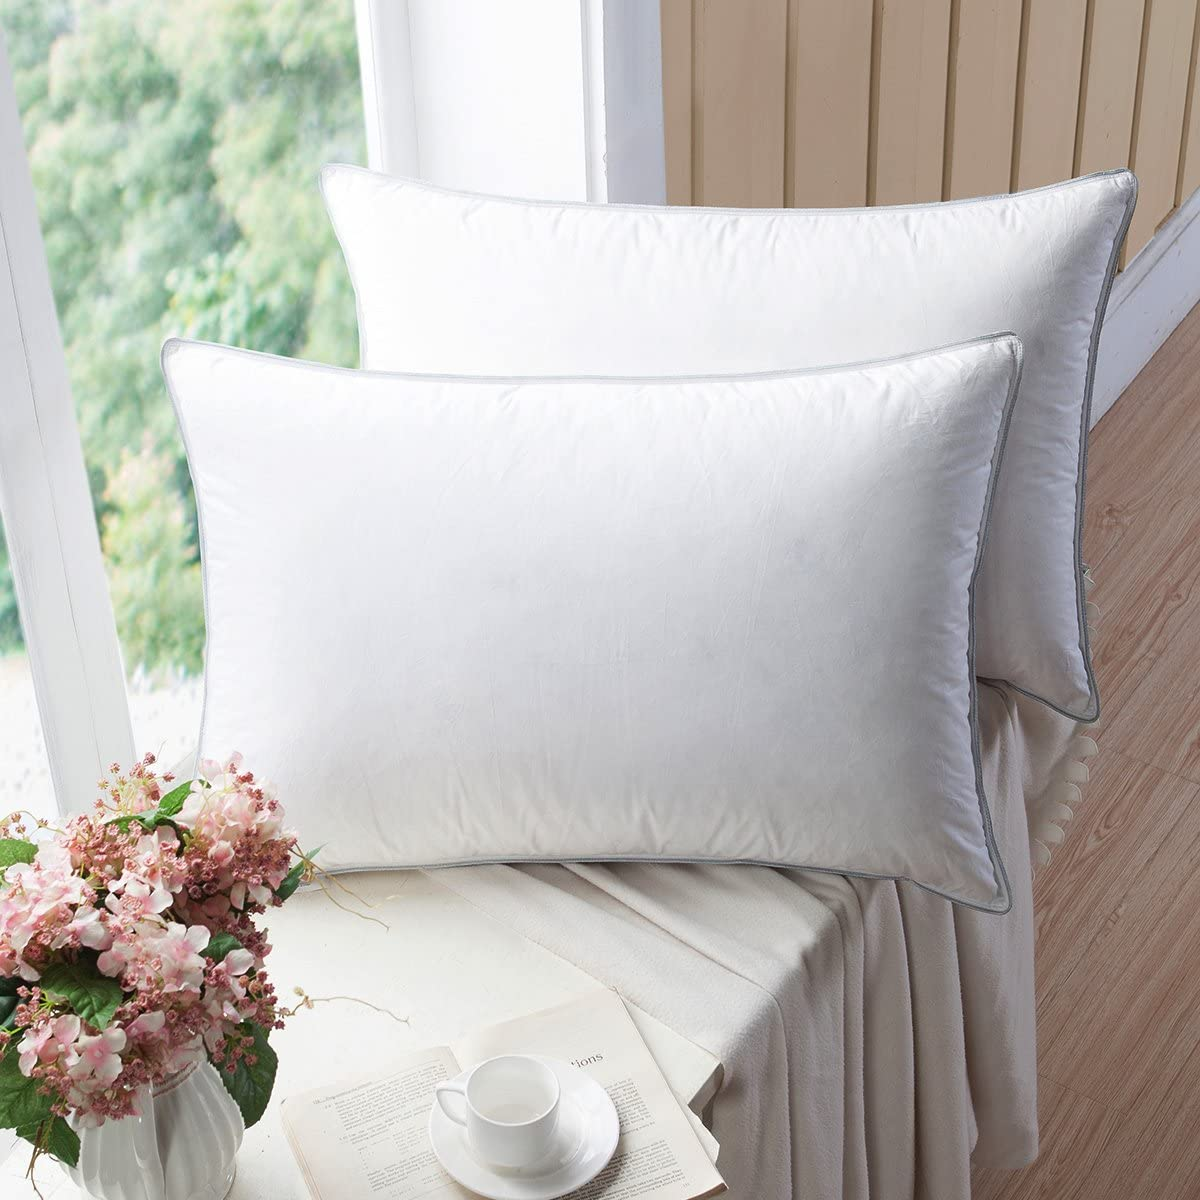 WENERSI Premium Goose Down Pillows Feather with Ranking integrated 1st place Outlet SALE Blended 2-Pack